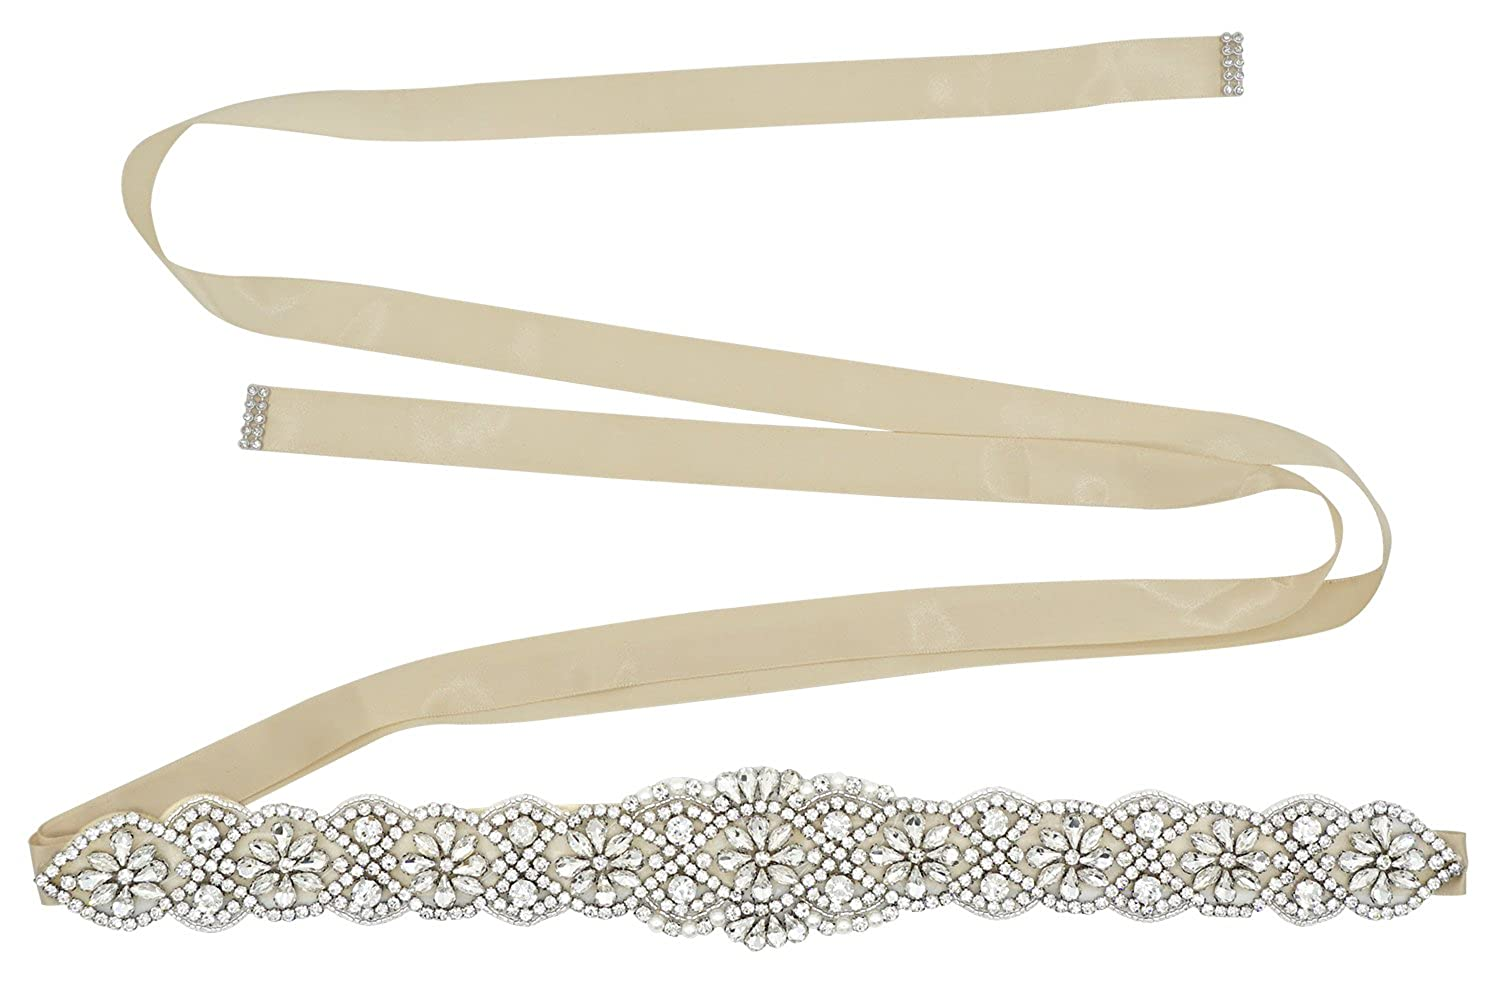 Lovful Bridal Crystal Rhinestone Braided Wedding Dress Sash Belt Beige Sash One Size ELA17030080